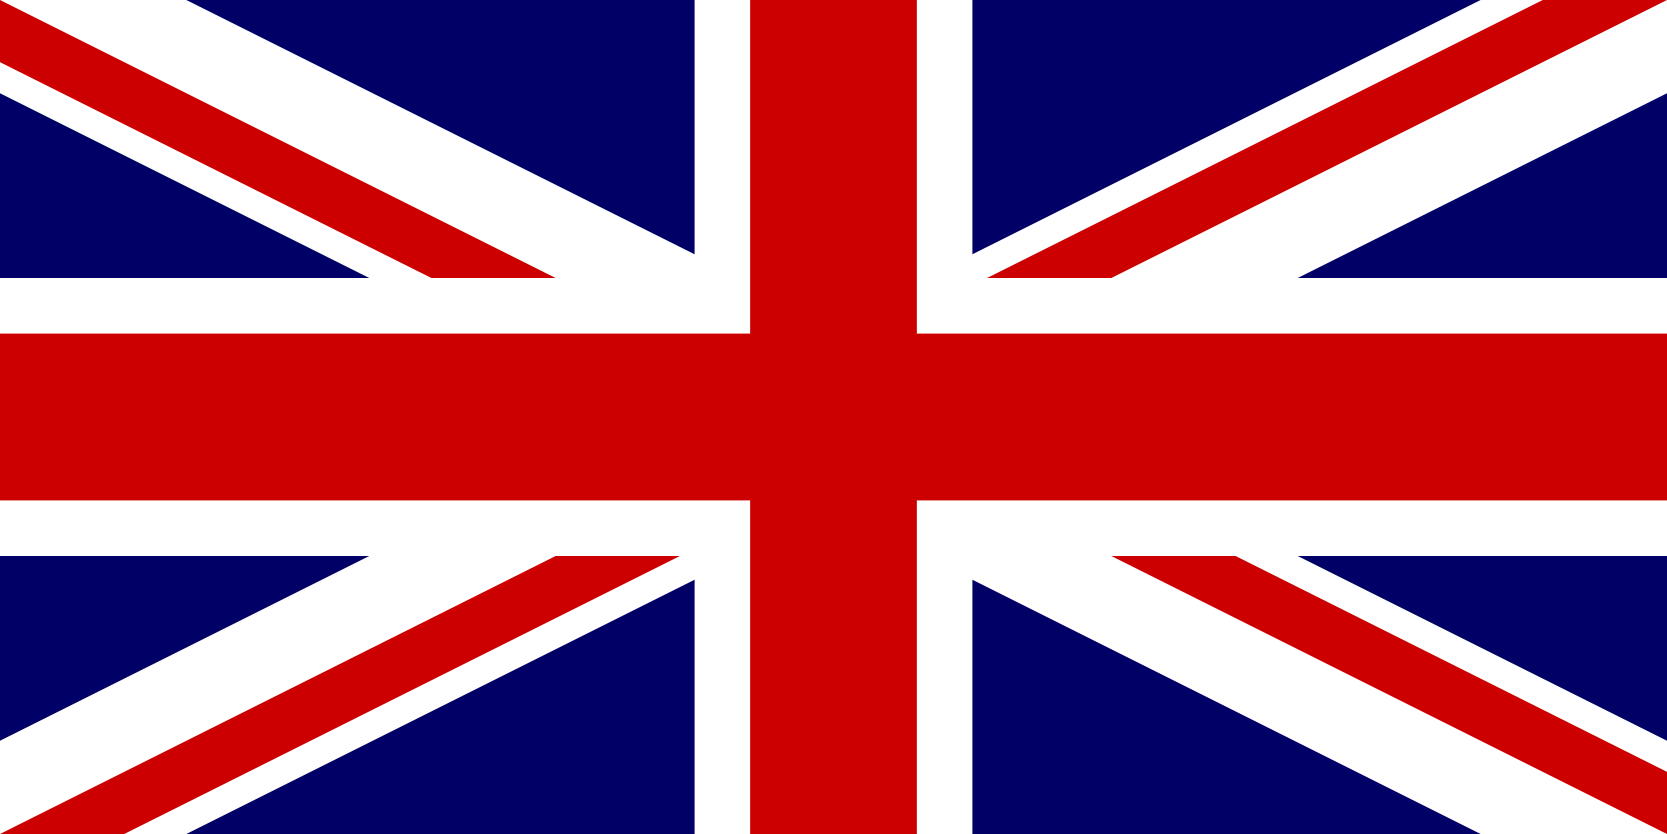 english language flag - photo #5